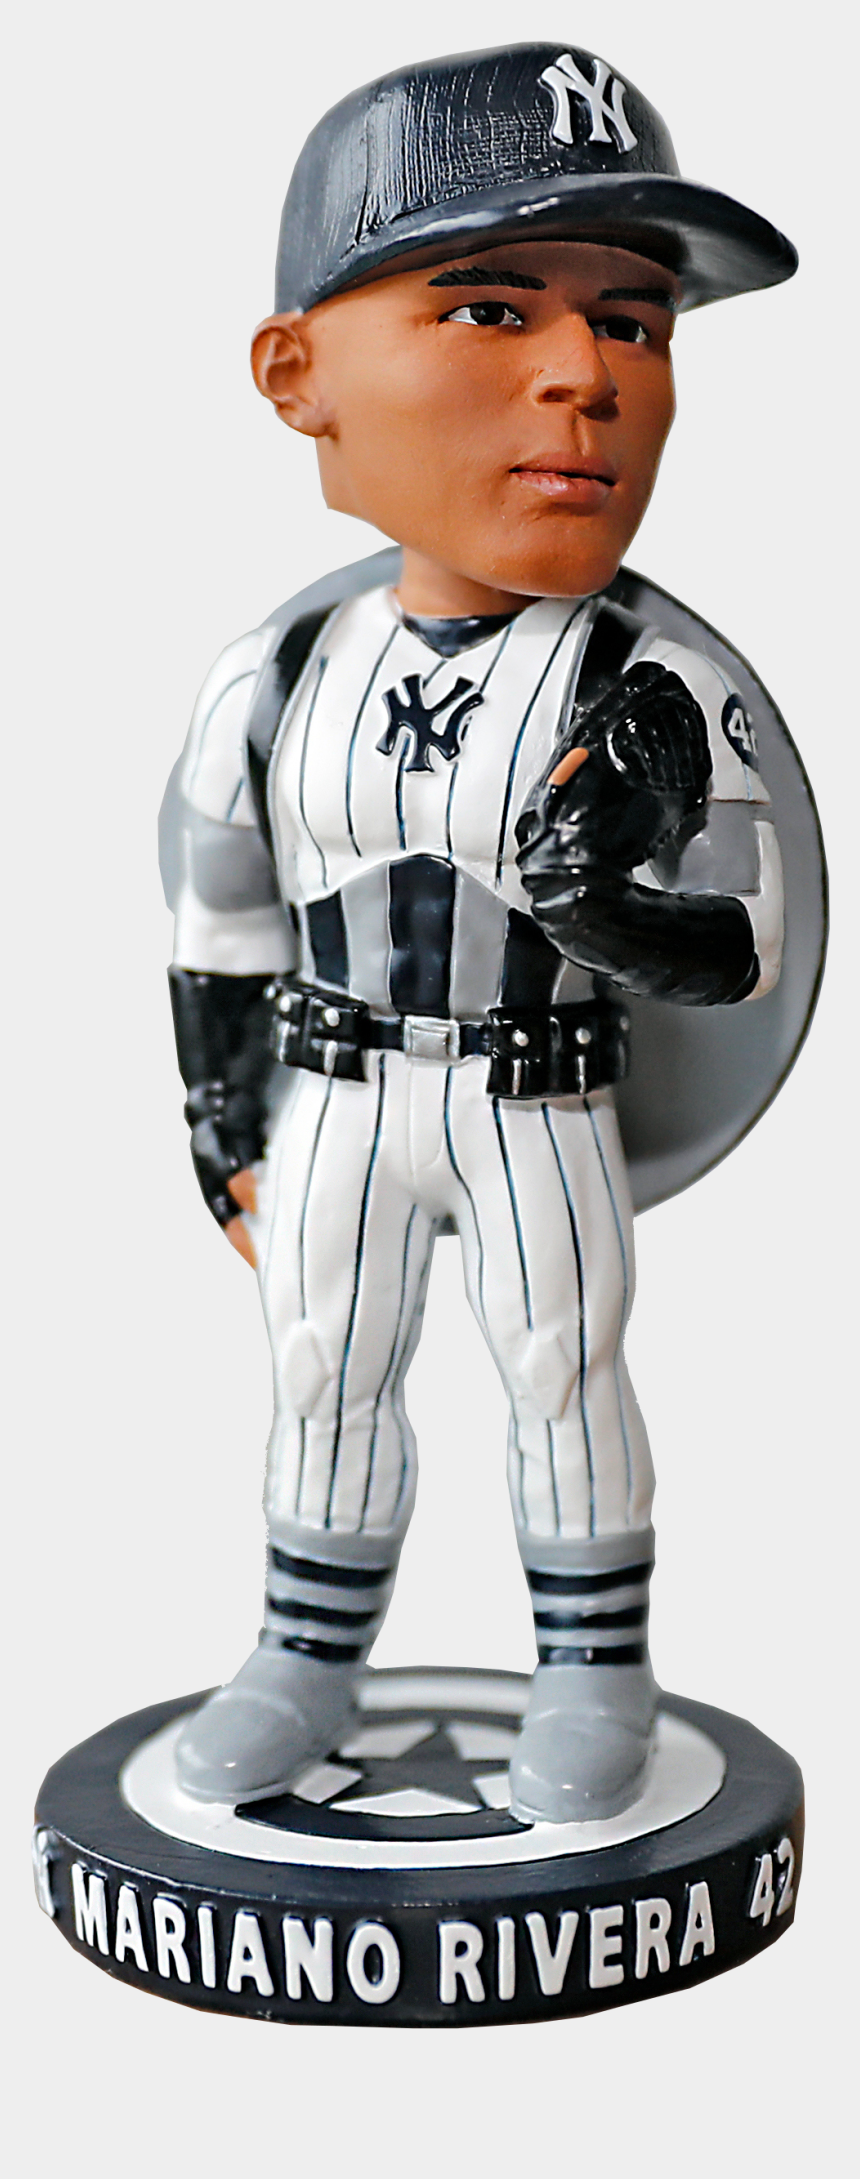 yankee baseball clipart, Cartoons - Presented By Delta Air Lines - Figurine